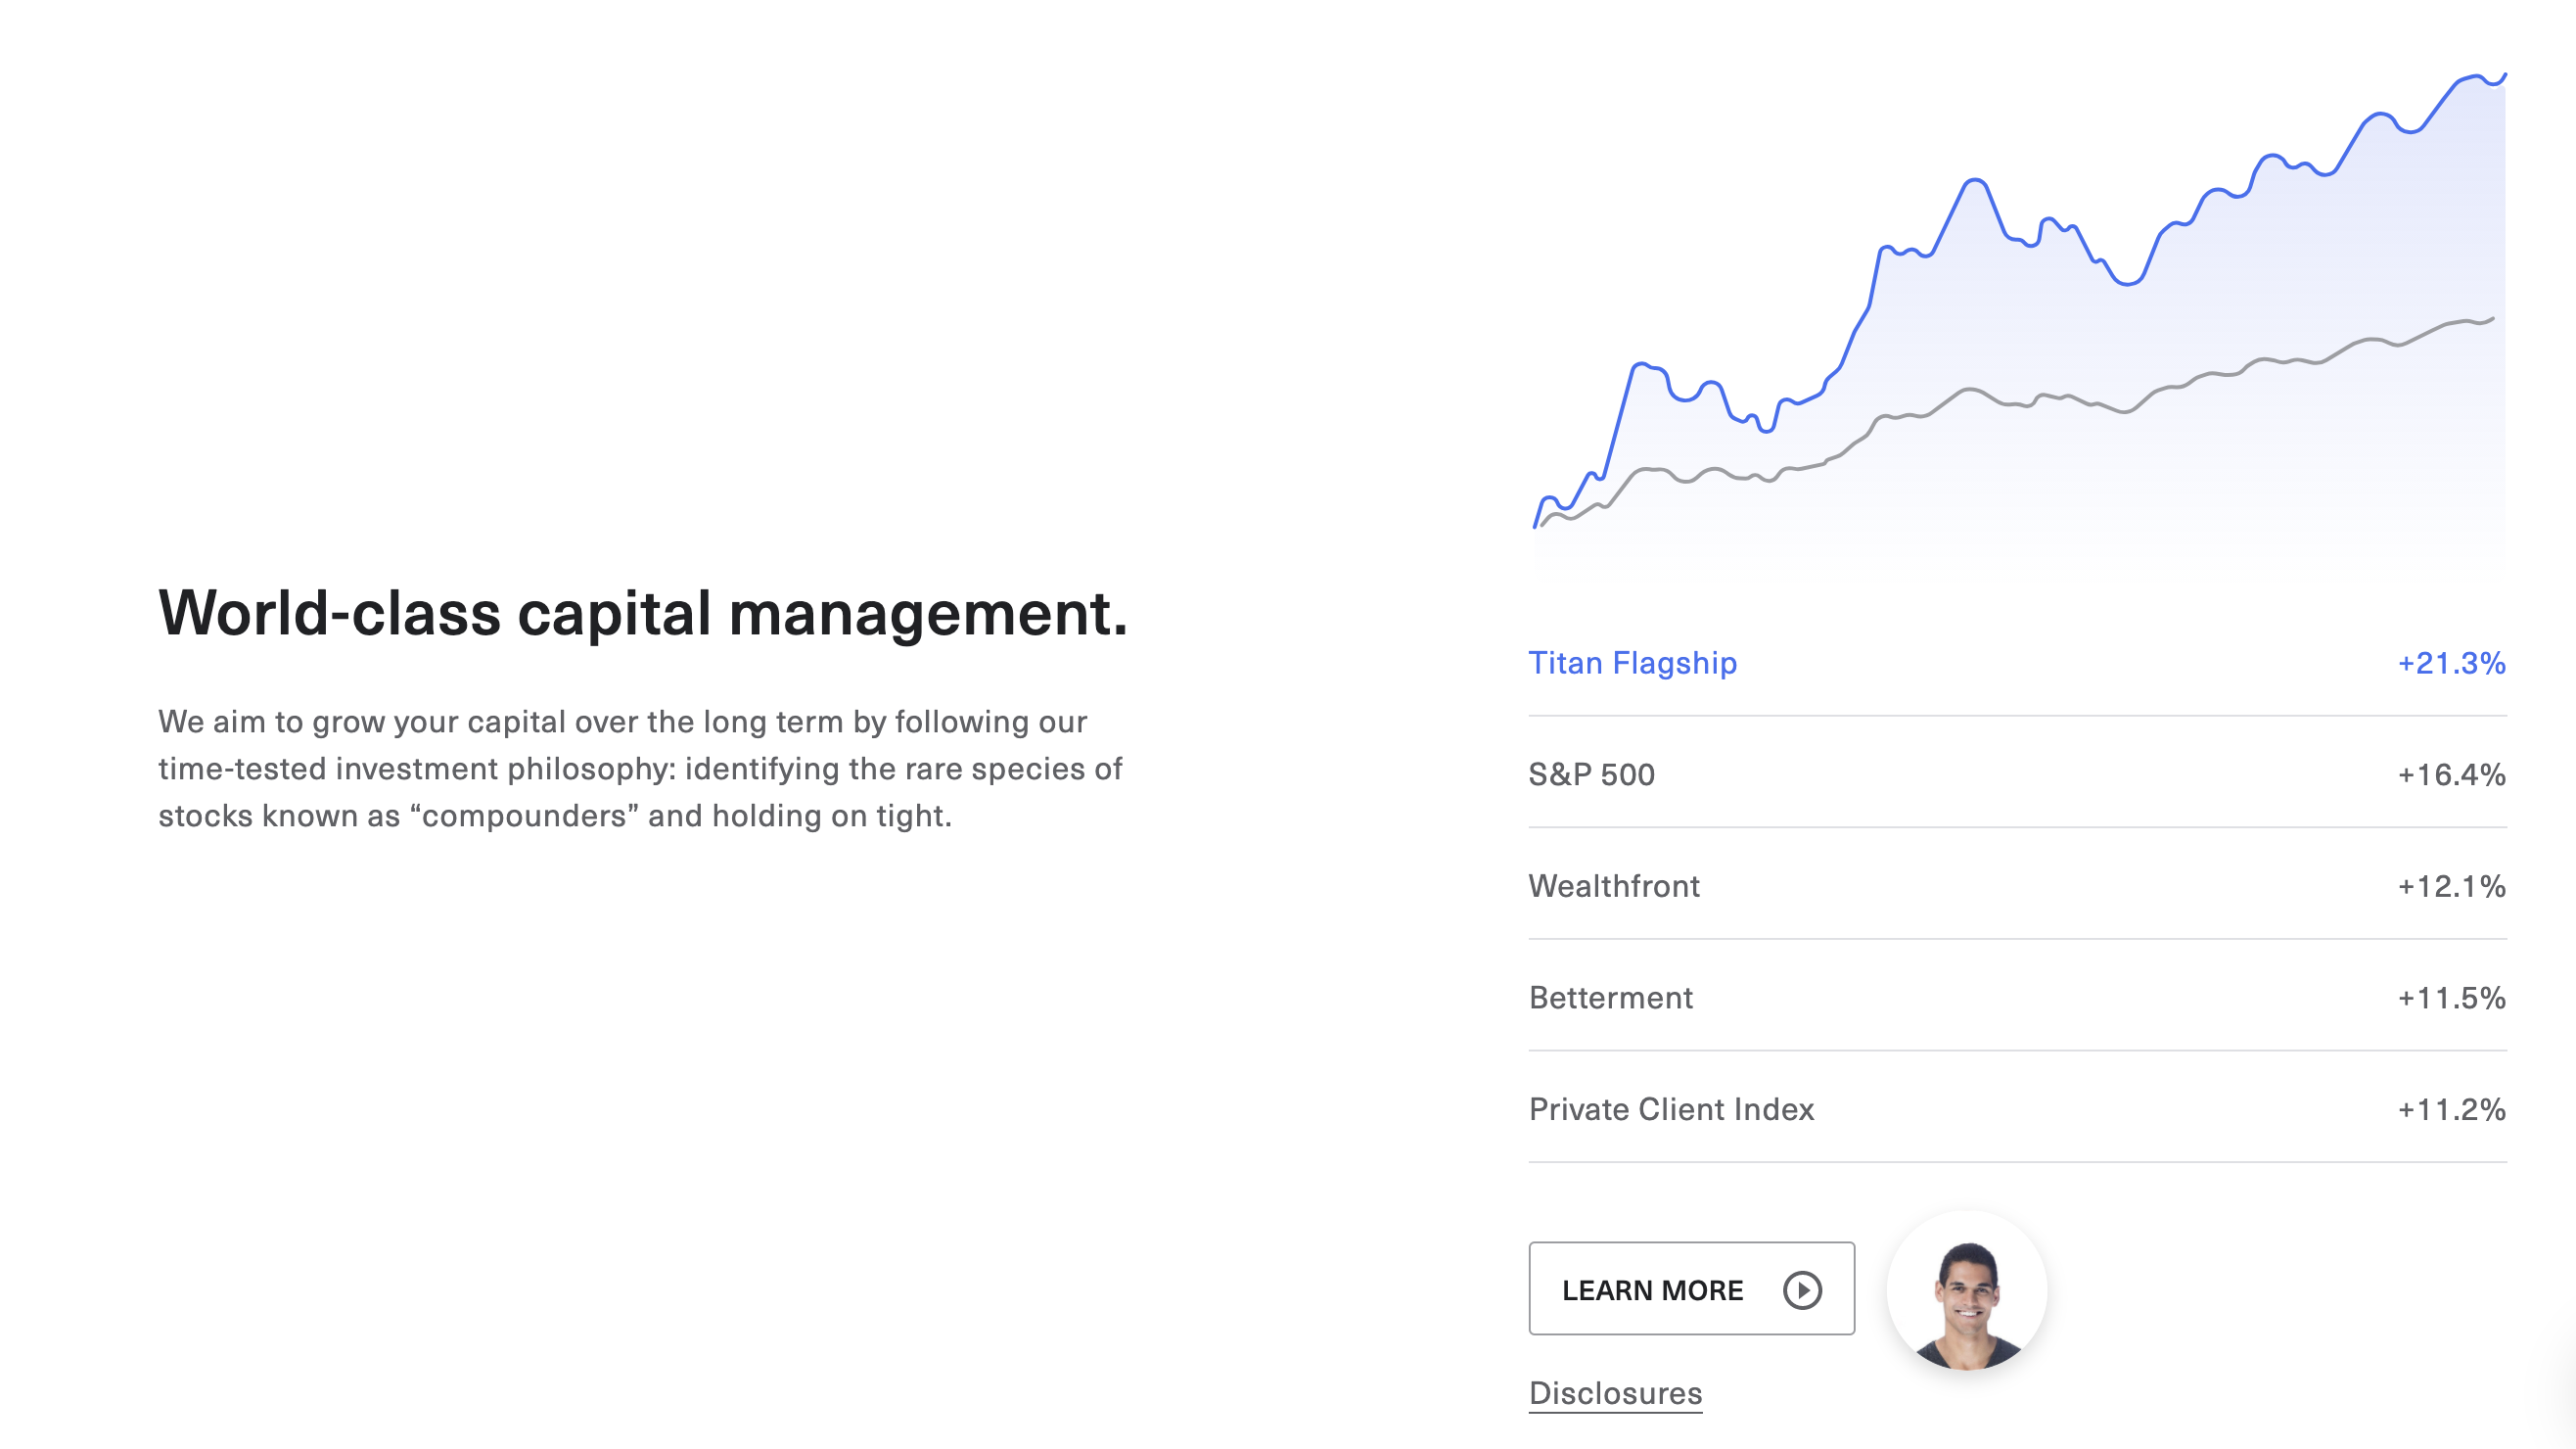 Titan wants to bring better tools to all its investors, so anyone can invest like they're on Wall Street. Titan has seen extremely high returns, even in market downturns like the Covid-19 pandemic. Image from titan.com.